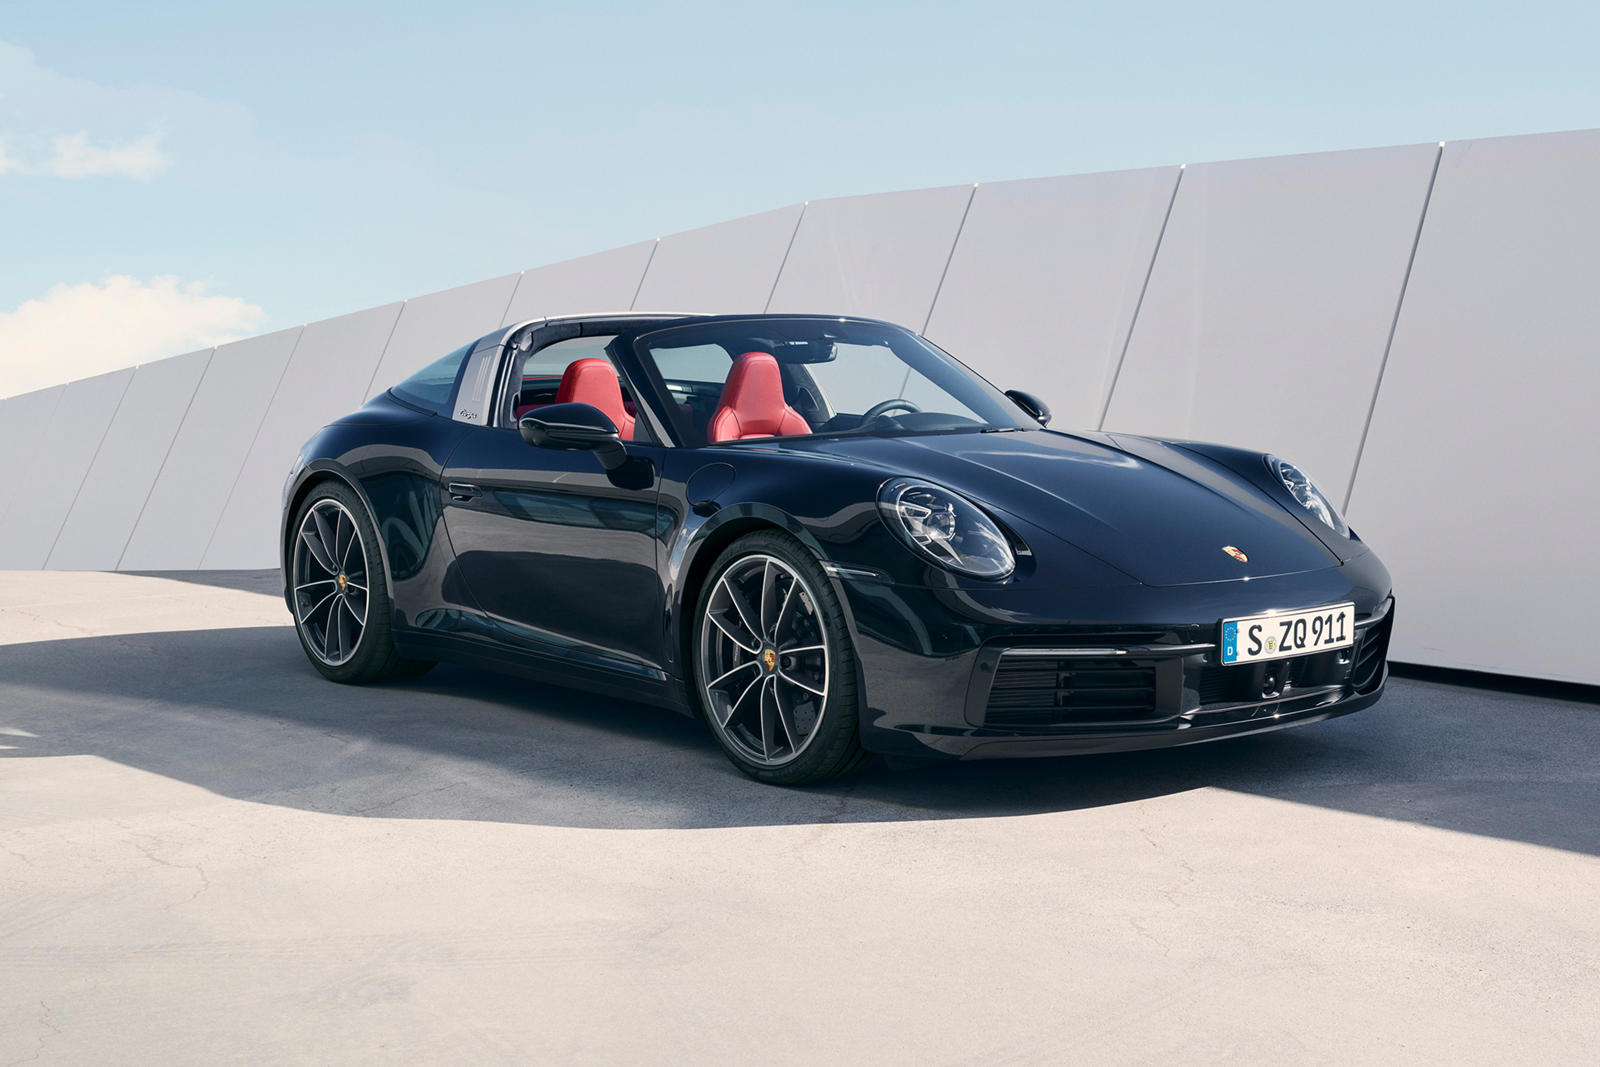 2021 Porsche 911 Targa 4 Review Trims Specs Price New Interior Features Exterior Design And Specifications Carbuzz